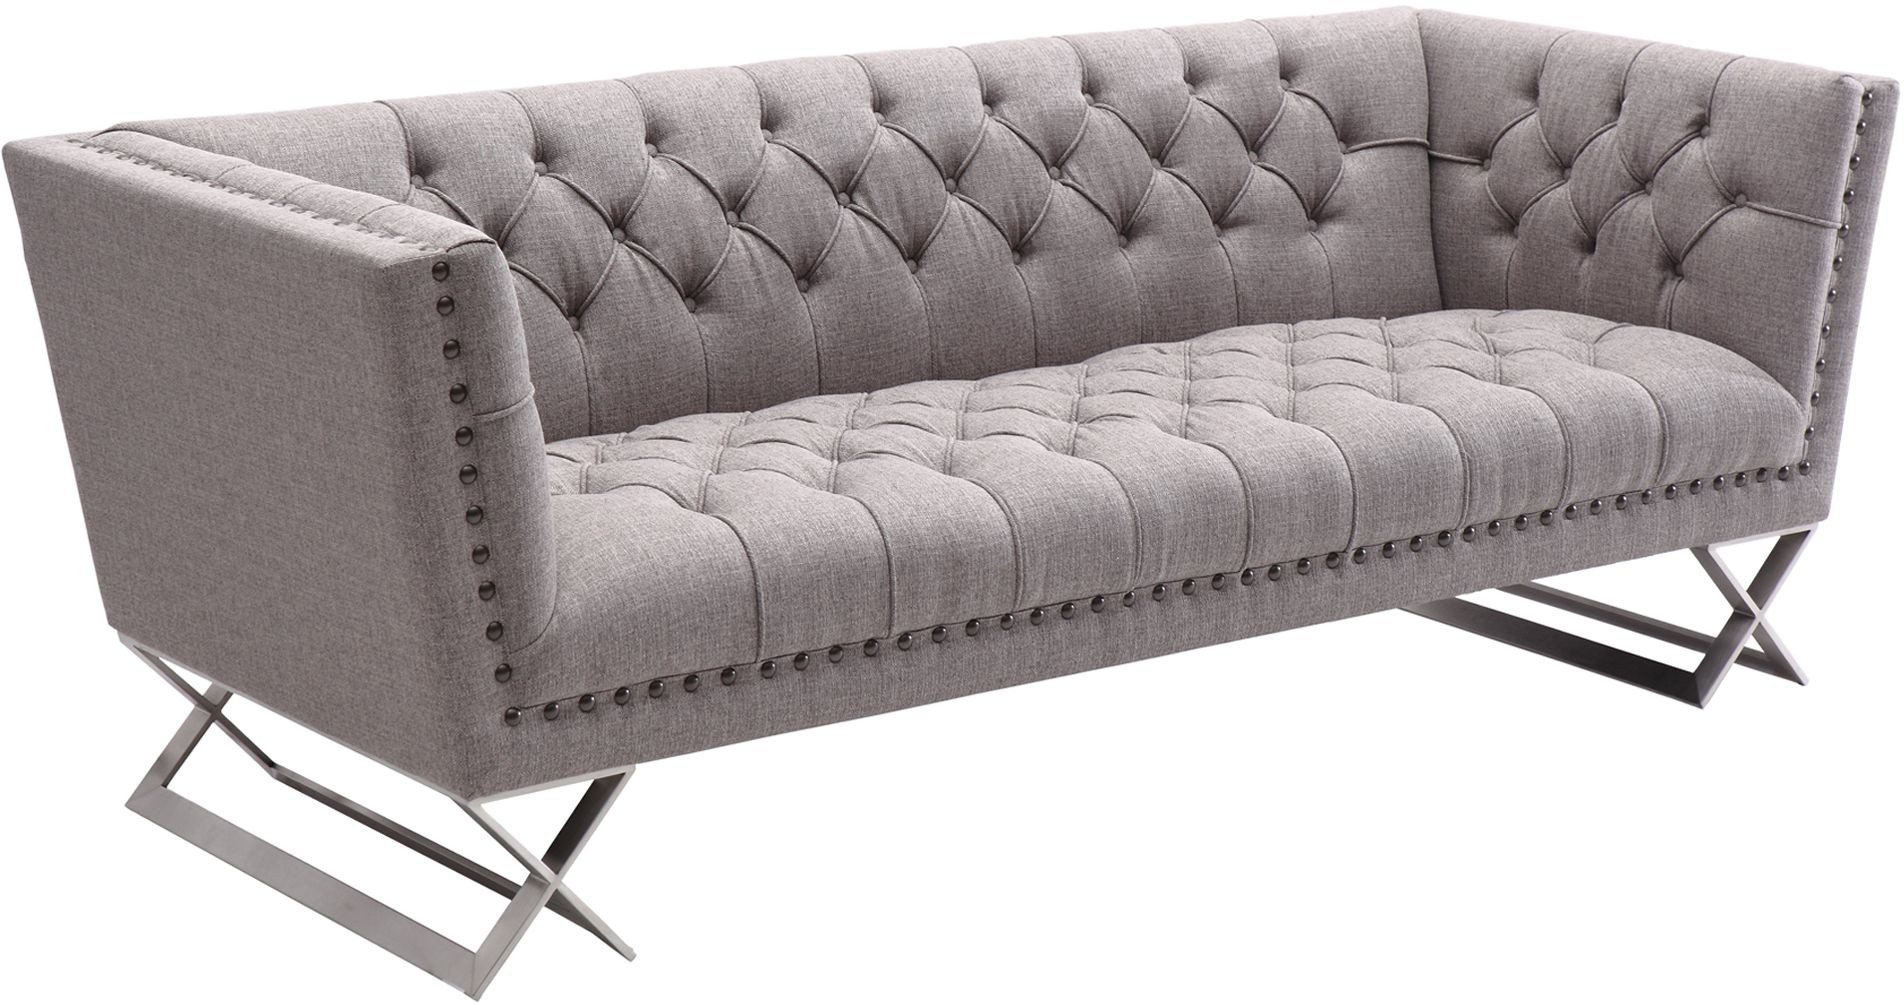 Odyssey grey tweed upholstery sofa lcod3gr armen living for Grey tweed couch